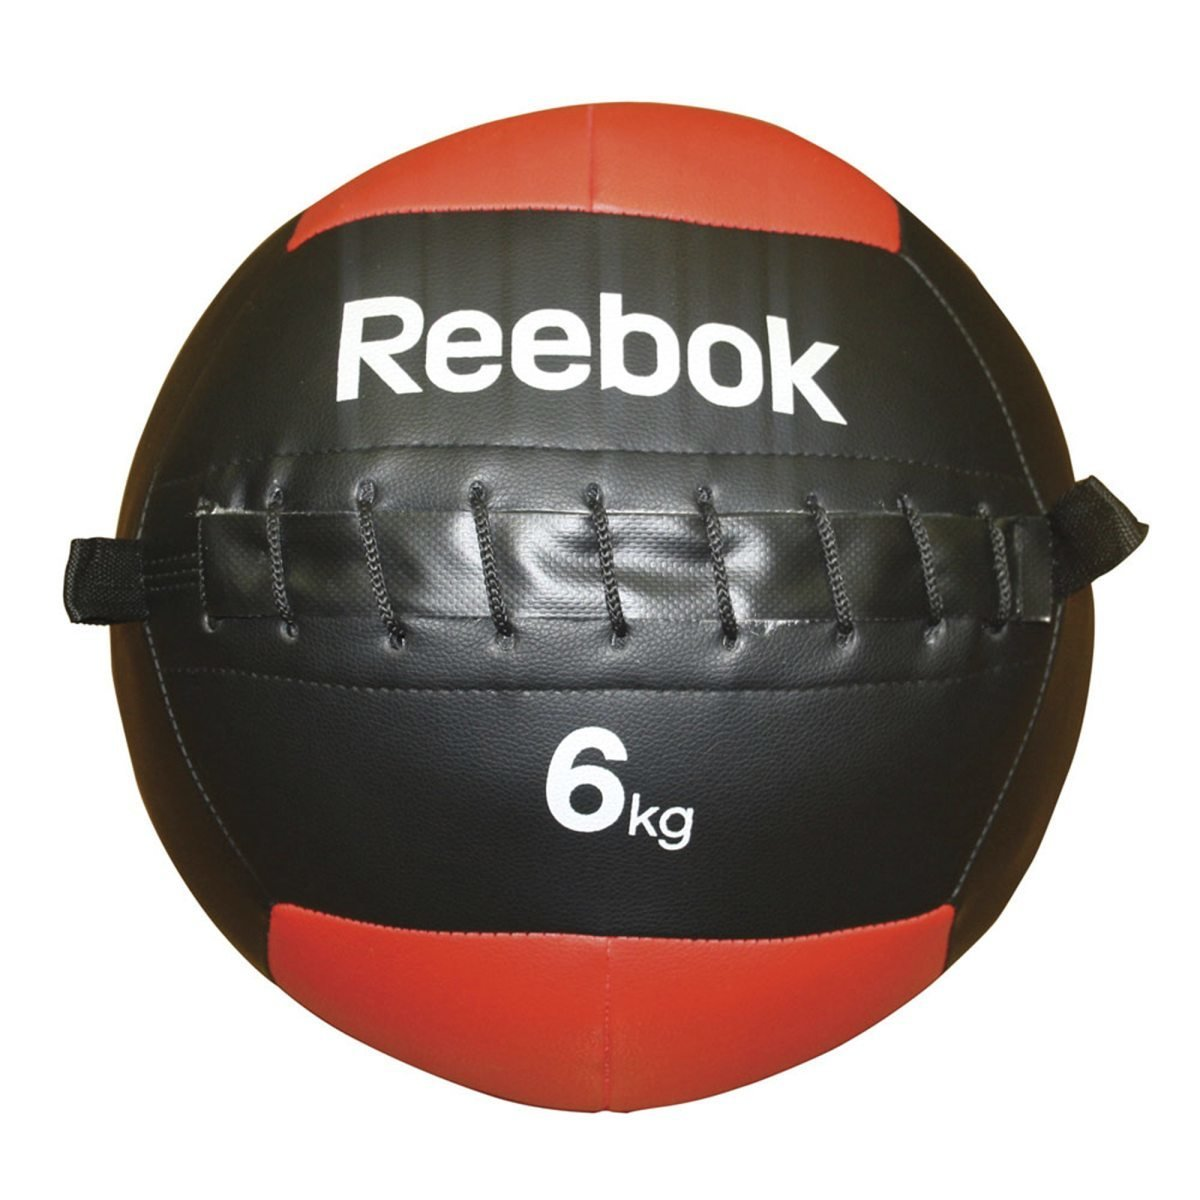 Reebok Studio Softball 8kg